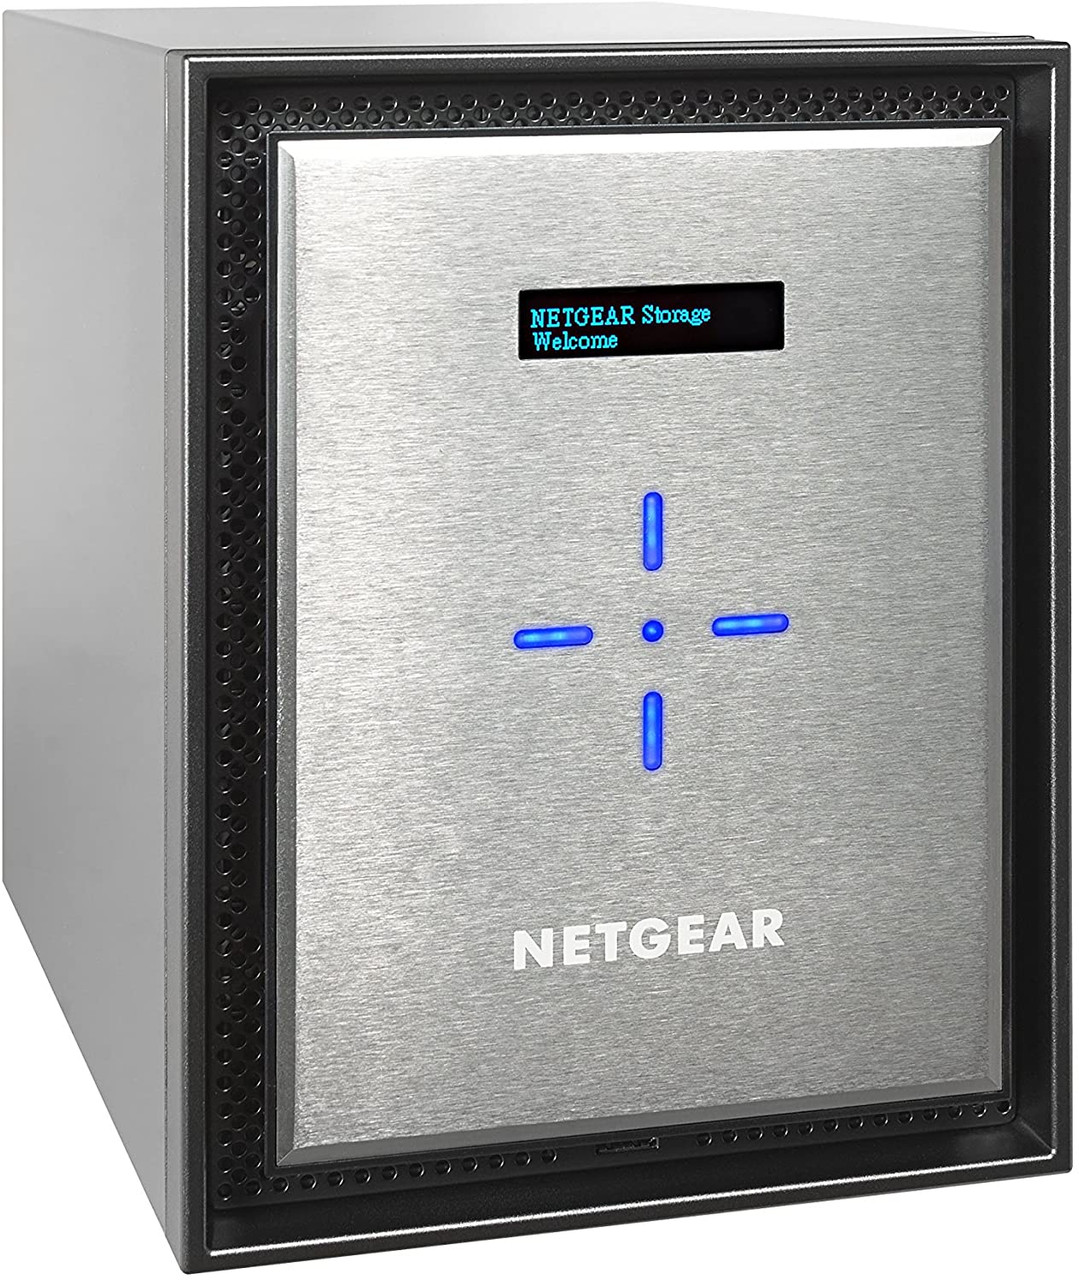 NETGEAR RN626X00-100NES ReadyNAS 626X 6 Bays with Intel® Xeon® Quad-Core Server Processor